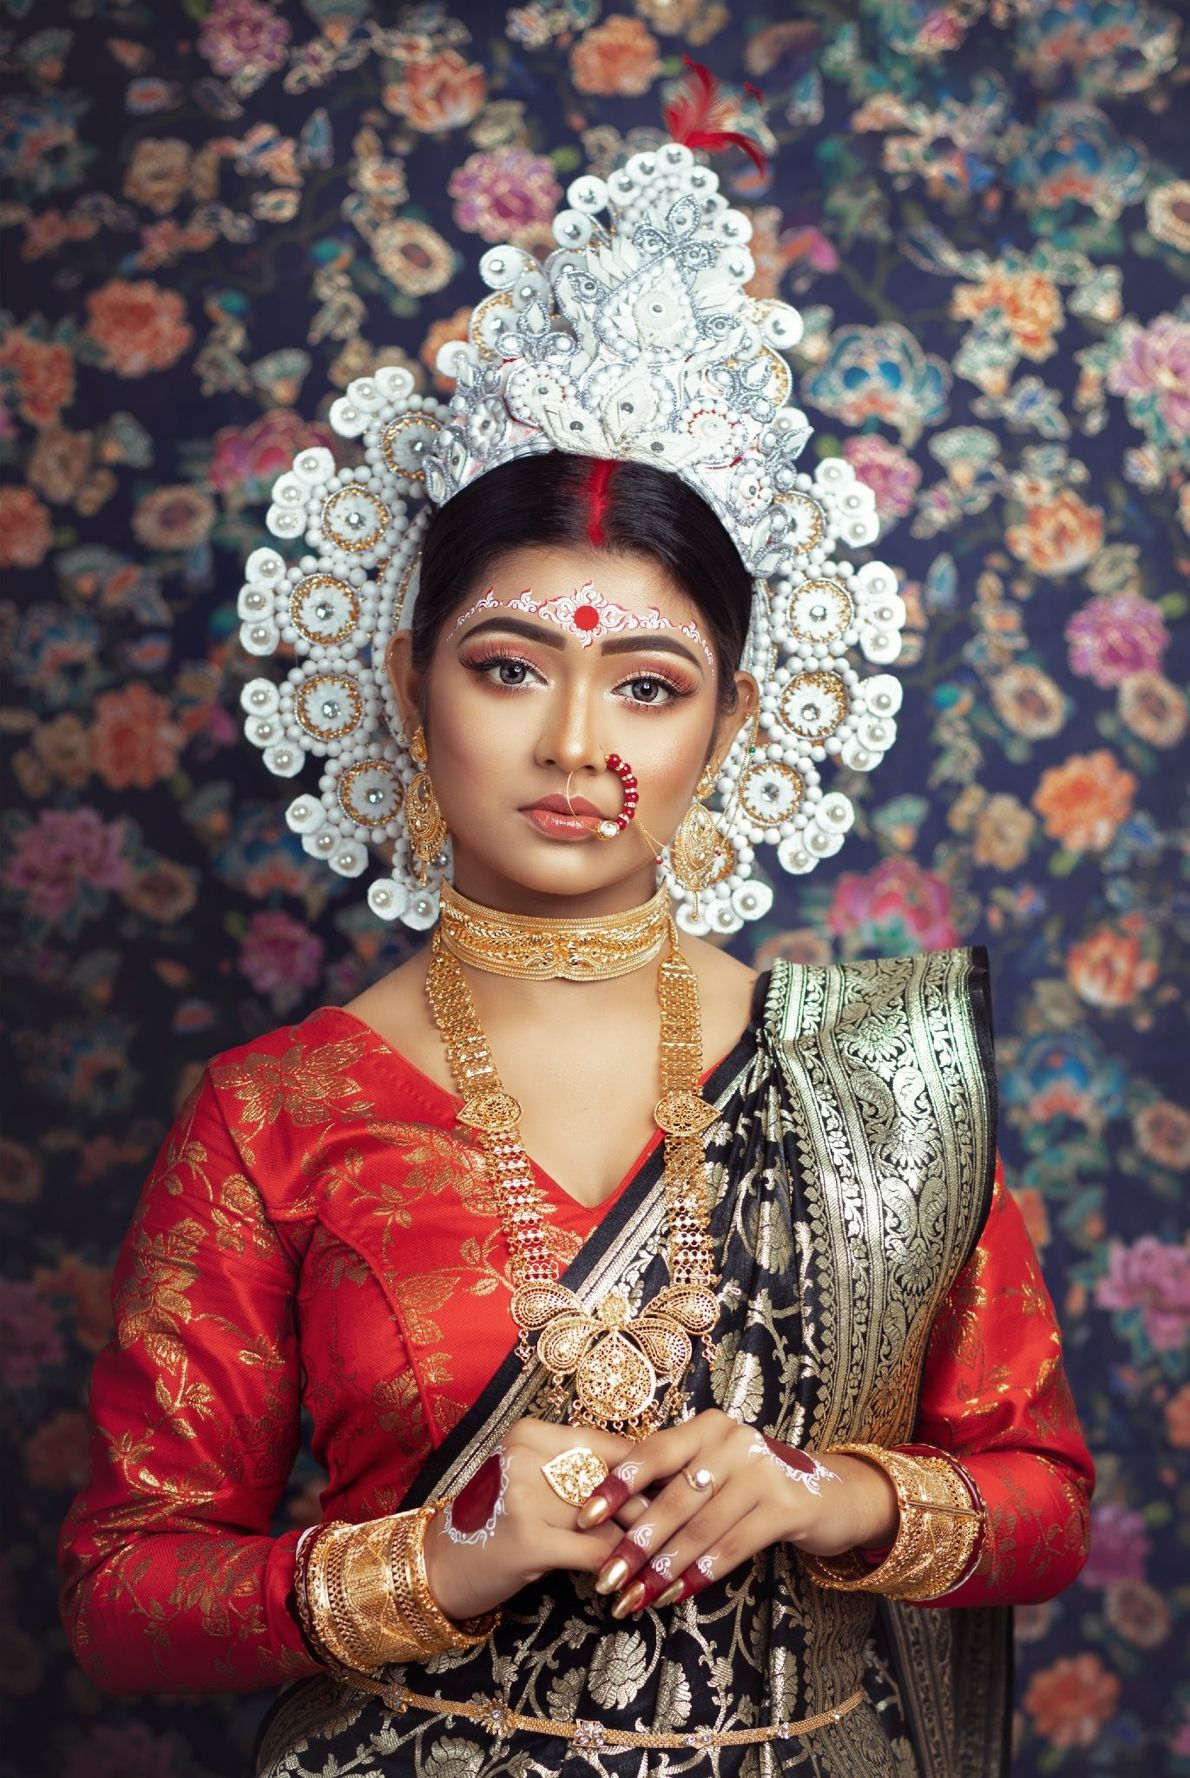 Your Shot photographer Paban Datta made this portrait of a bride in Bengal, India.